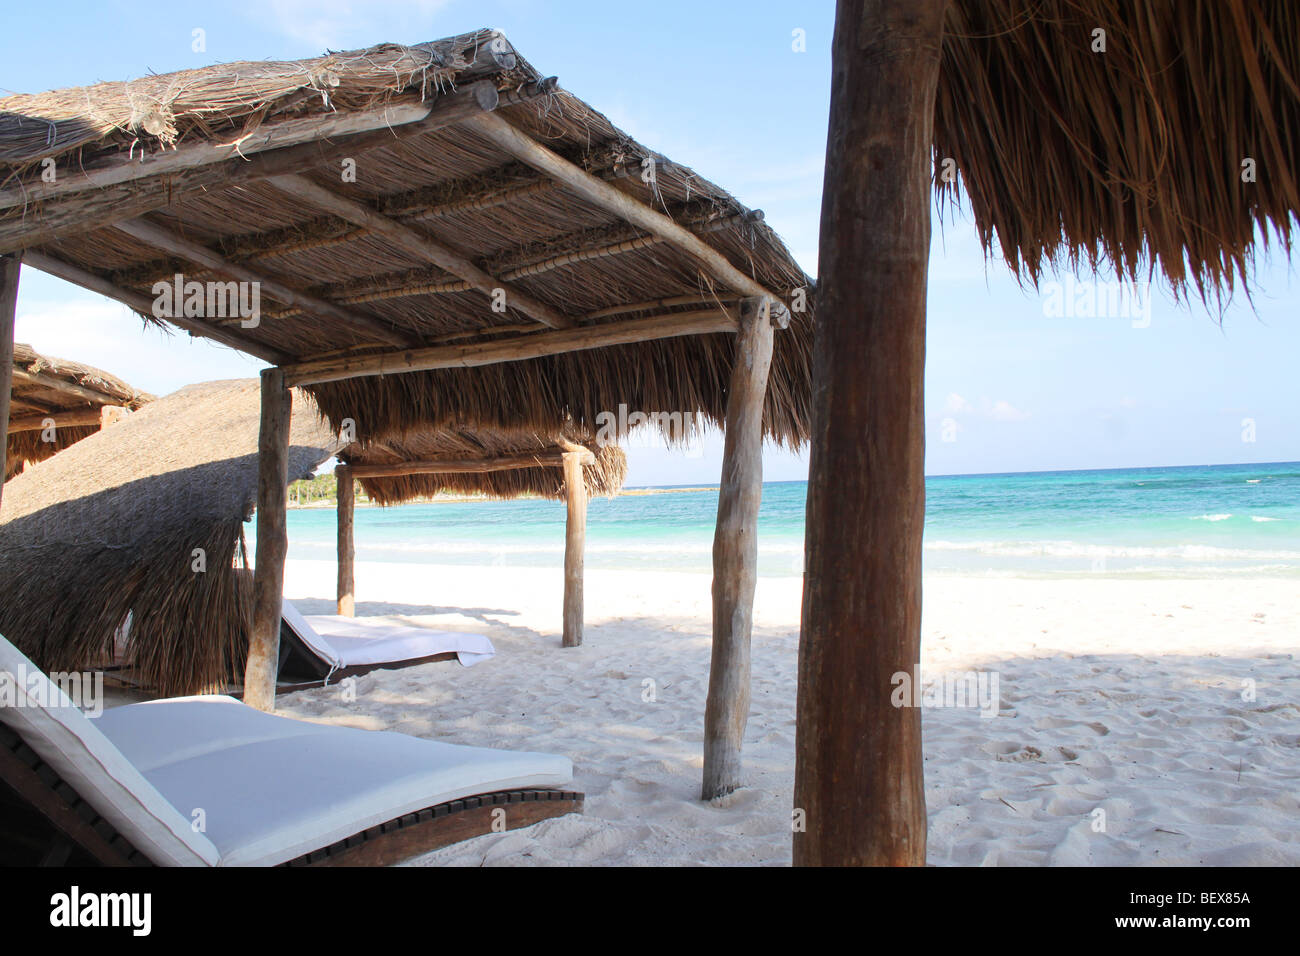 A Mexican beach with white sands and turquoise sea, Cancun's Riviera Maya, Mexico - Stock Image